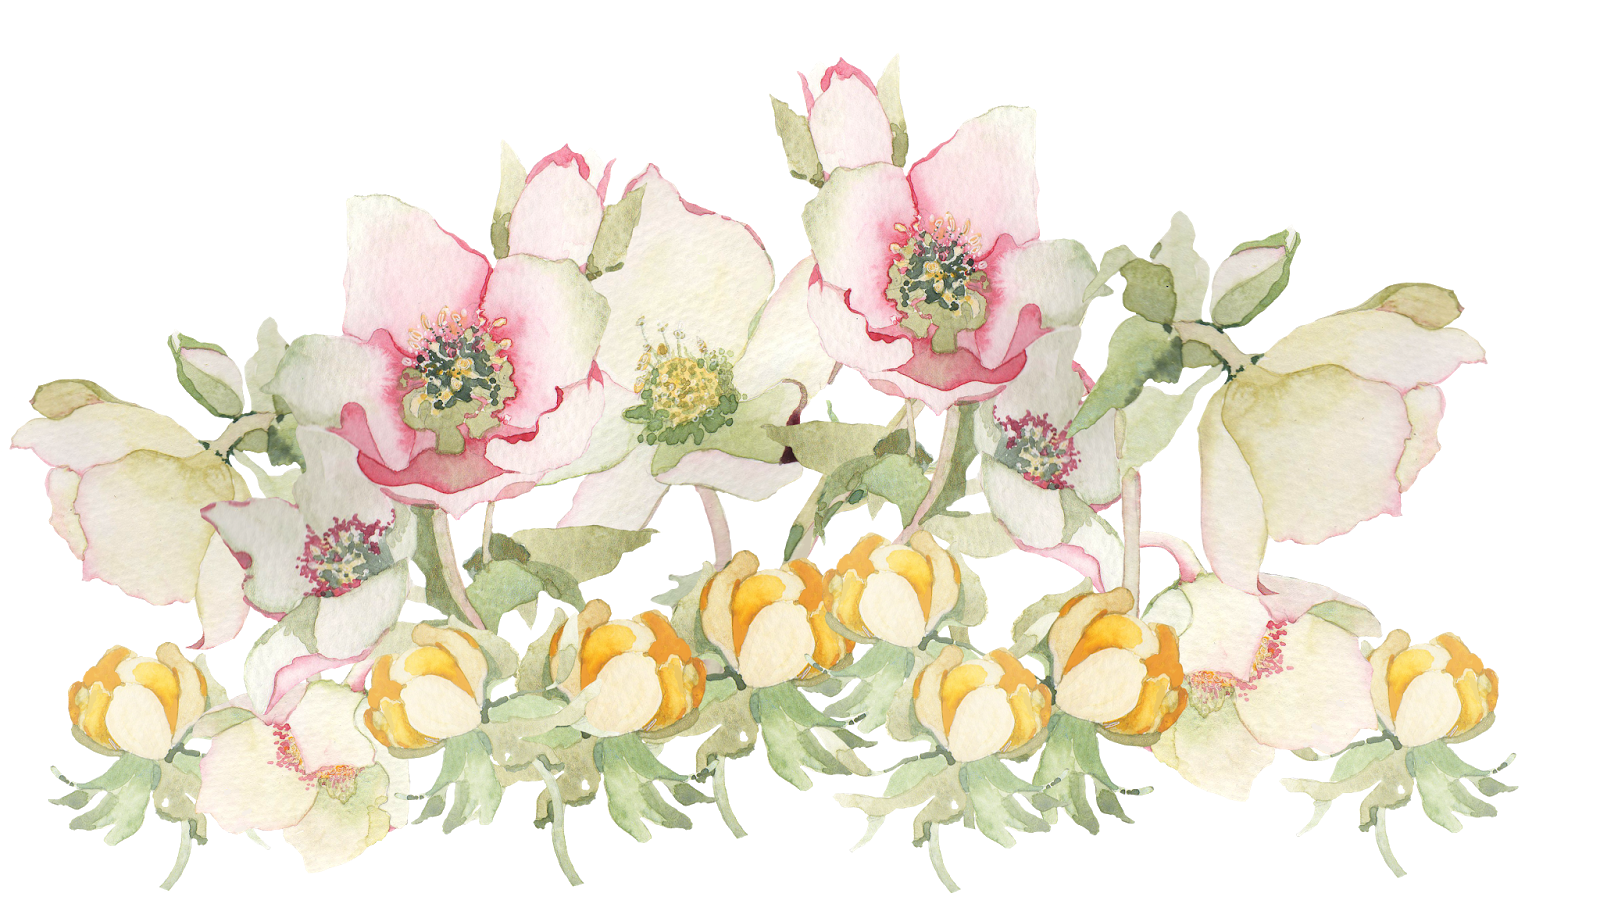 Free pictures of spring flowers freeuse stock Spring Flowers Png #43168 - Free Icons and PNG Backgrounds freeuse stock